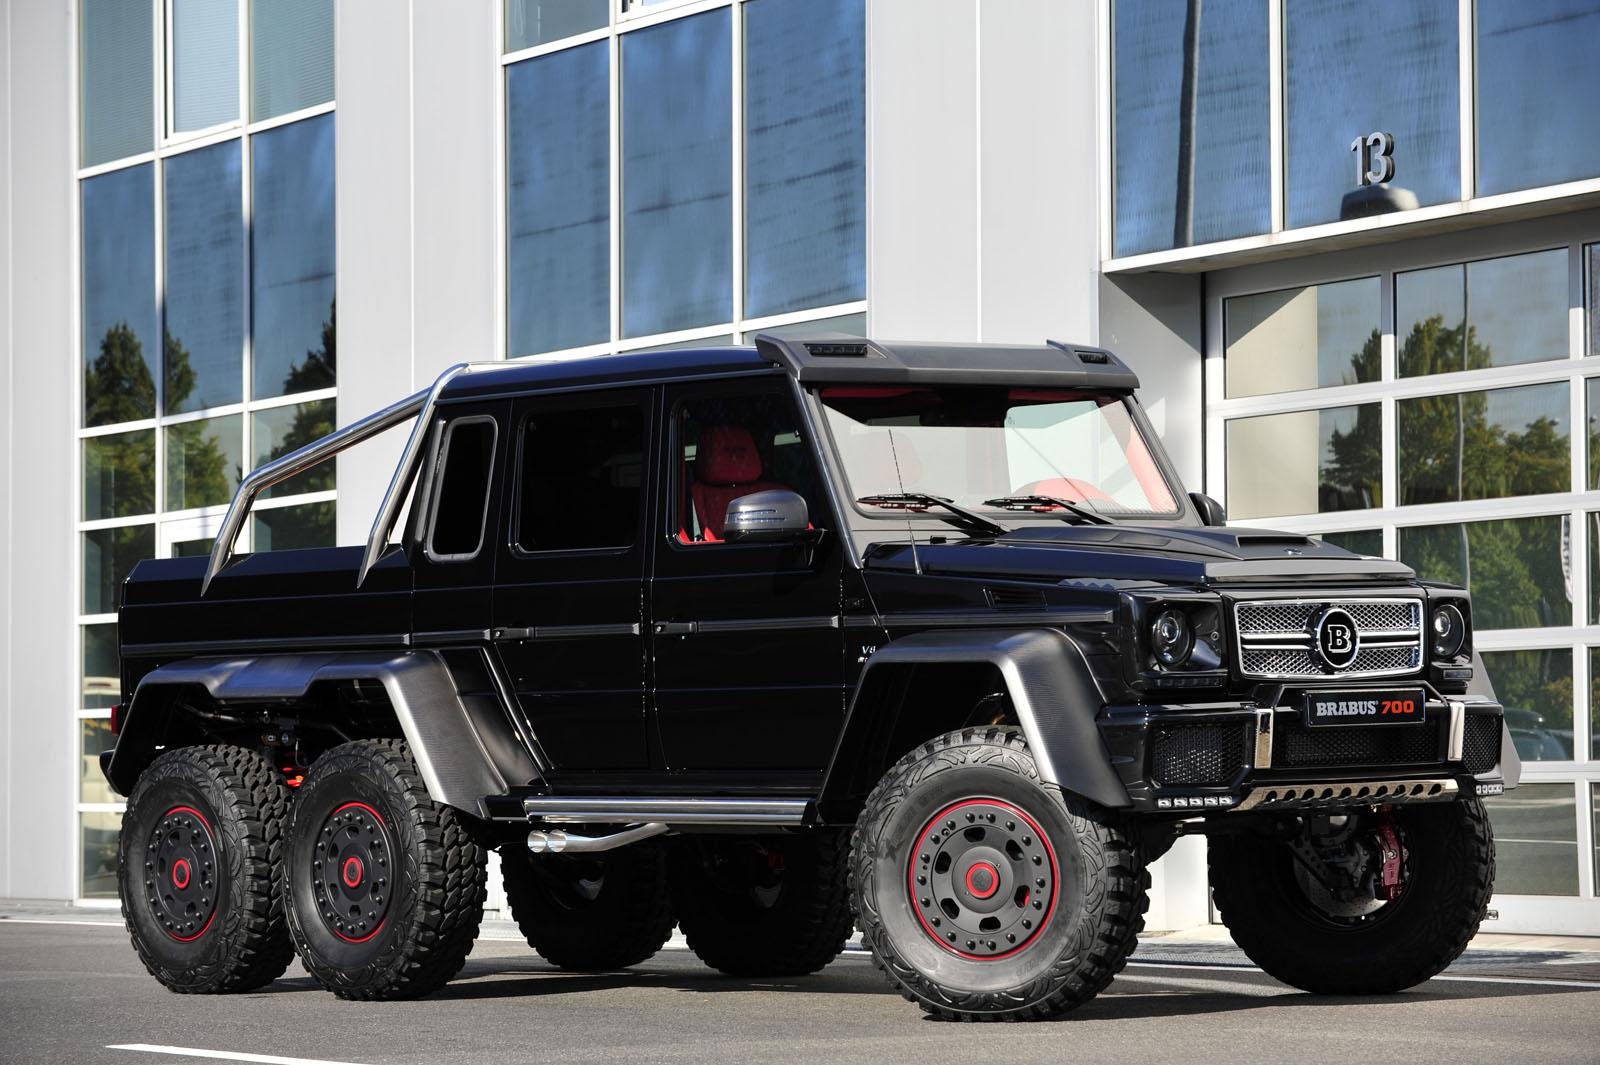 2013 mercedes-benz g63 amg 6x6 b63s-700brabus review - top speed